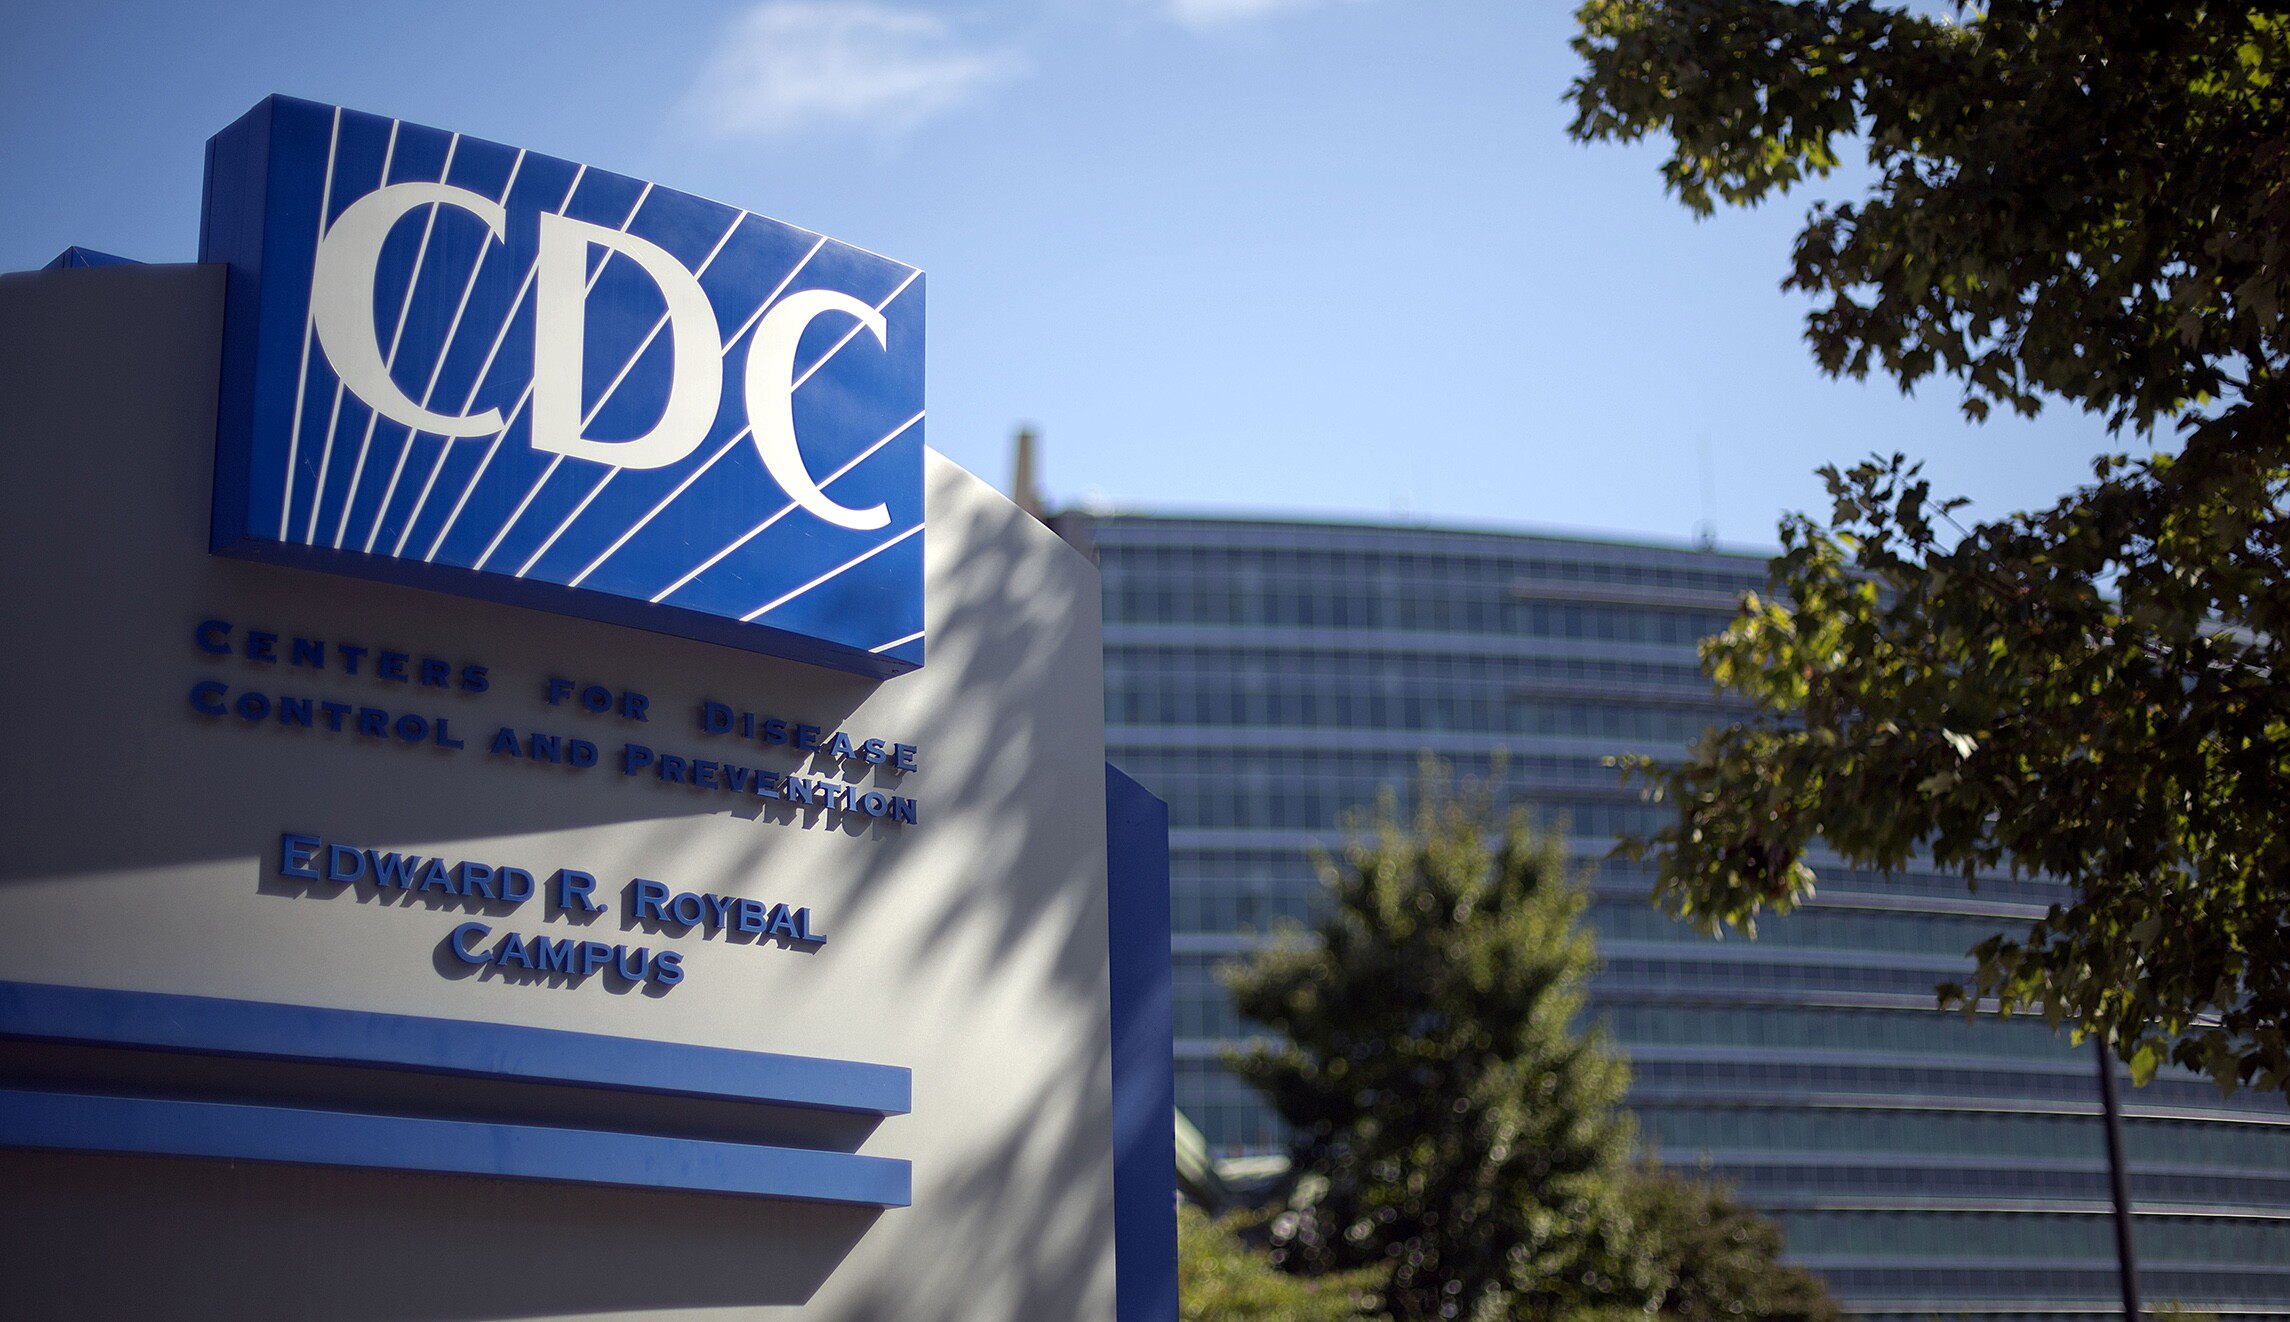 CDC director requests pay cut after outcry